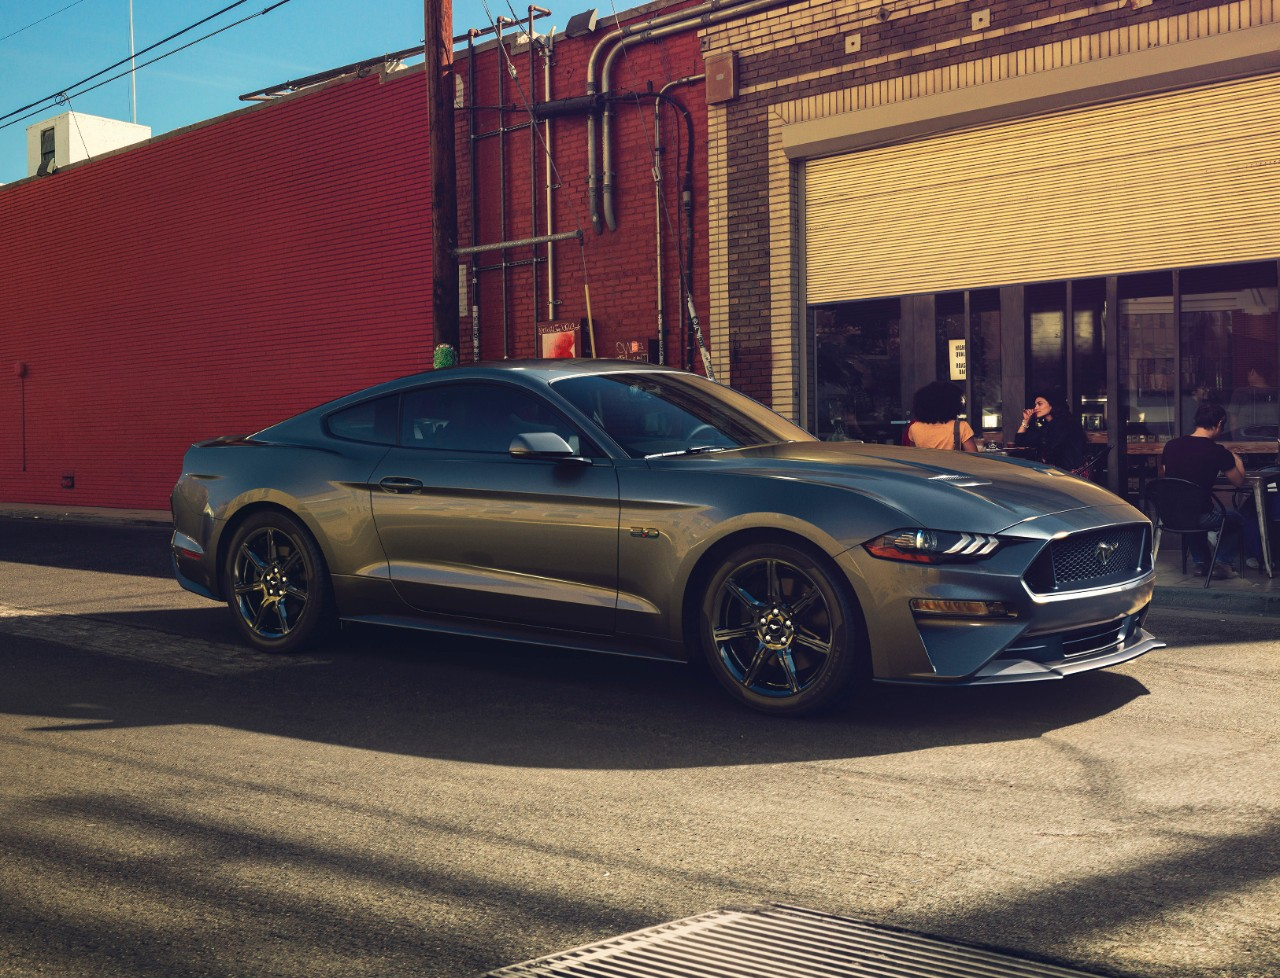 How Iconic The Ford Mustang Is